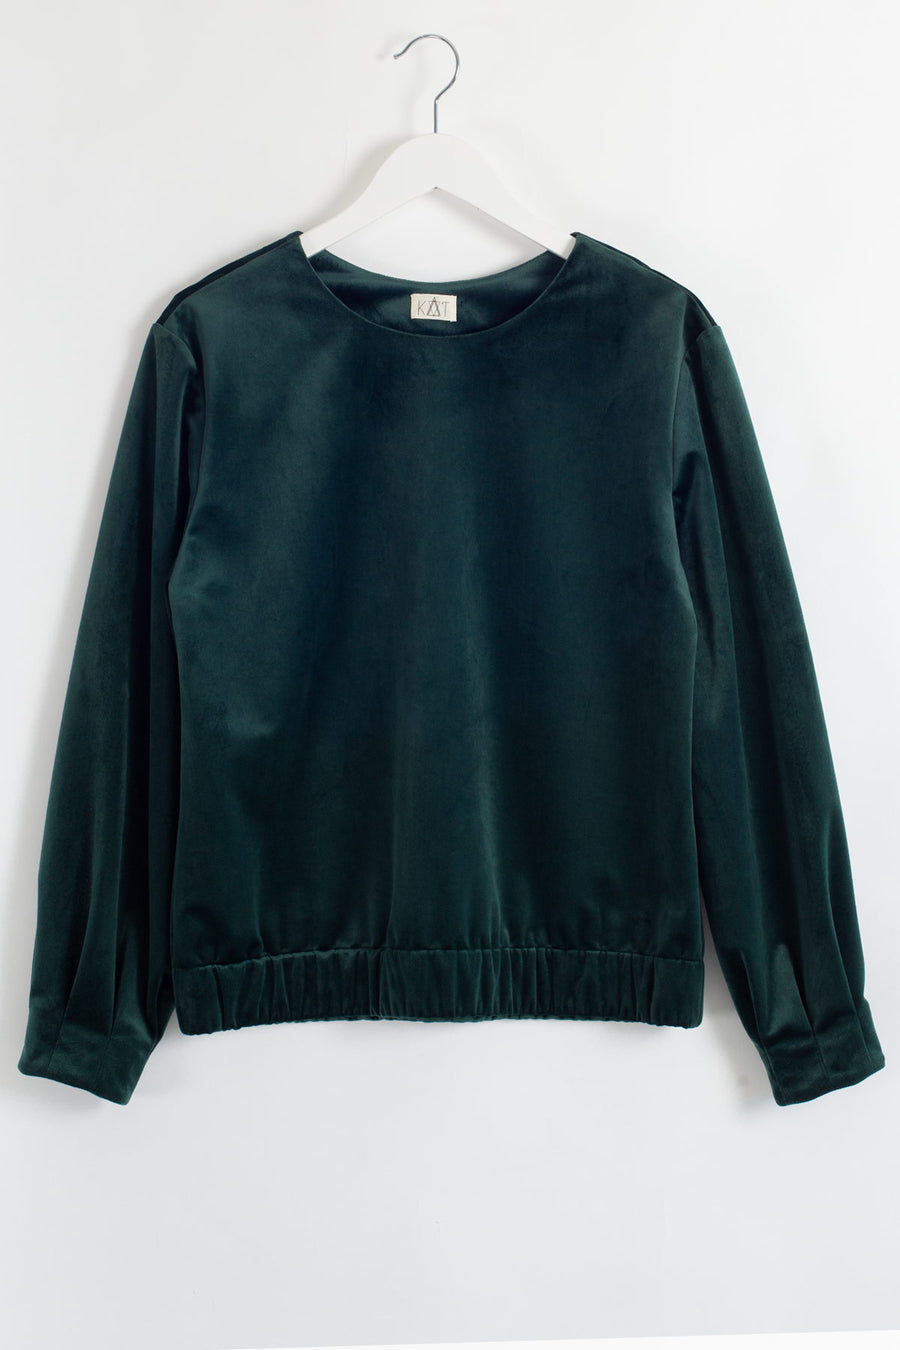 HARRIET Velvet Pullover - Green